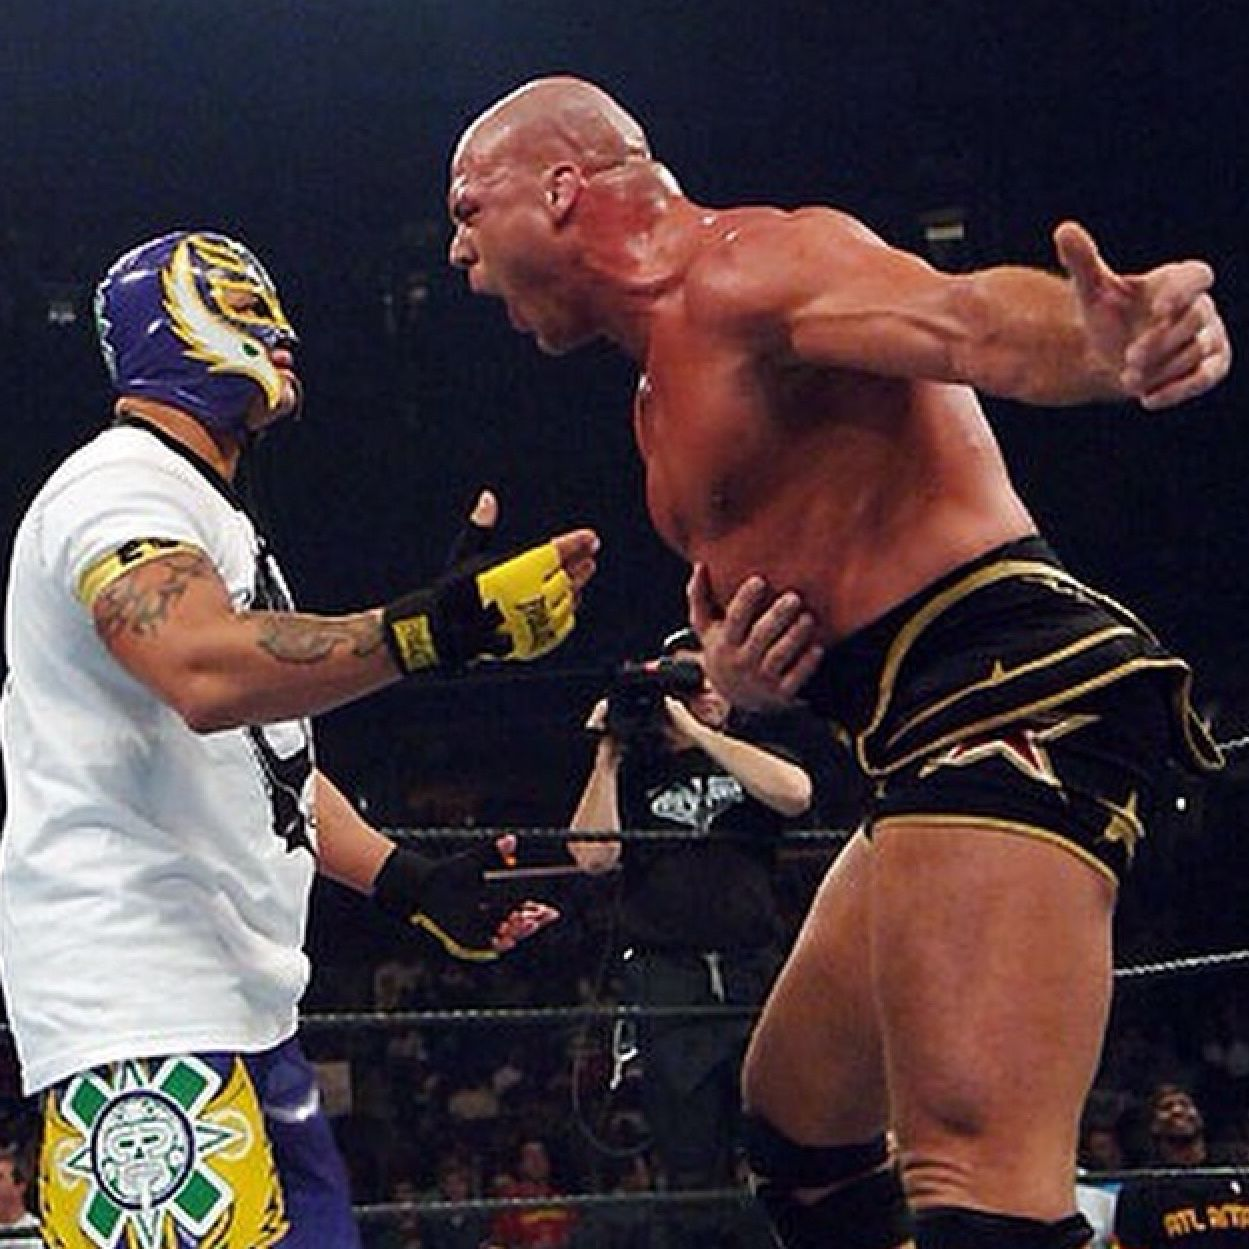 Lucha Libre Rey Misterio Rey Mysterio And Kurt Angle Wrestling Wwe Wrestlers